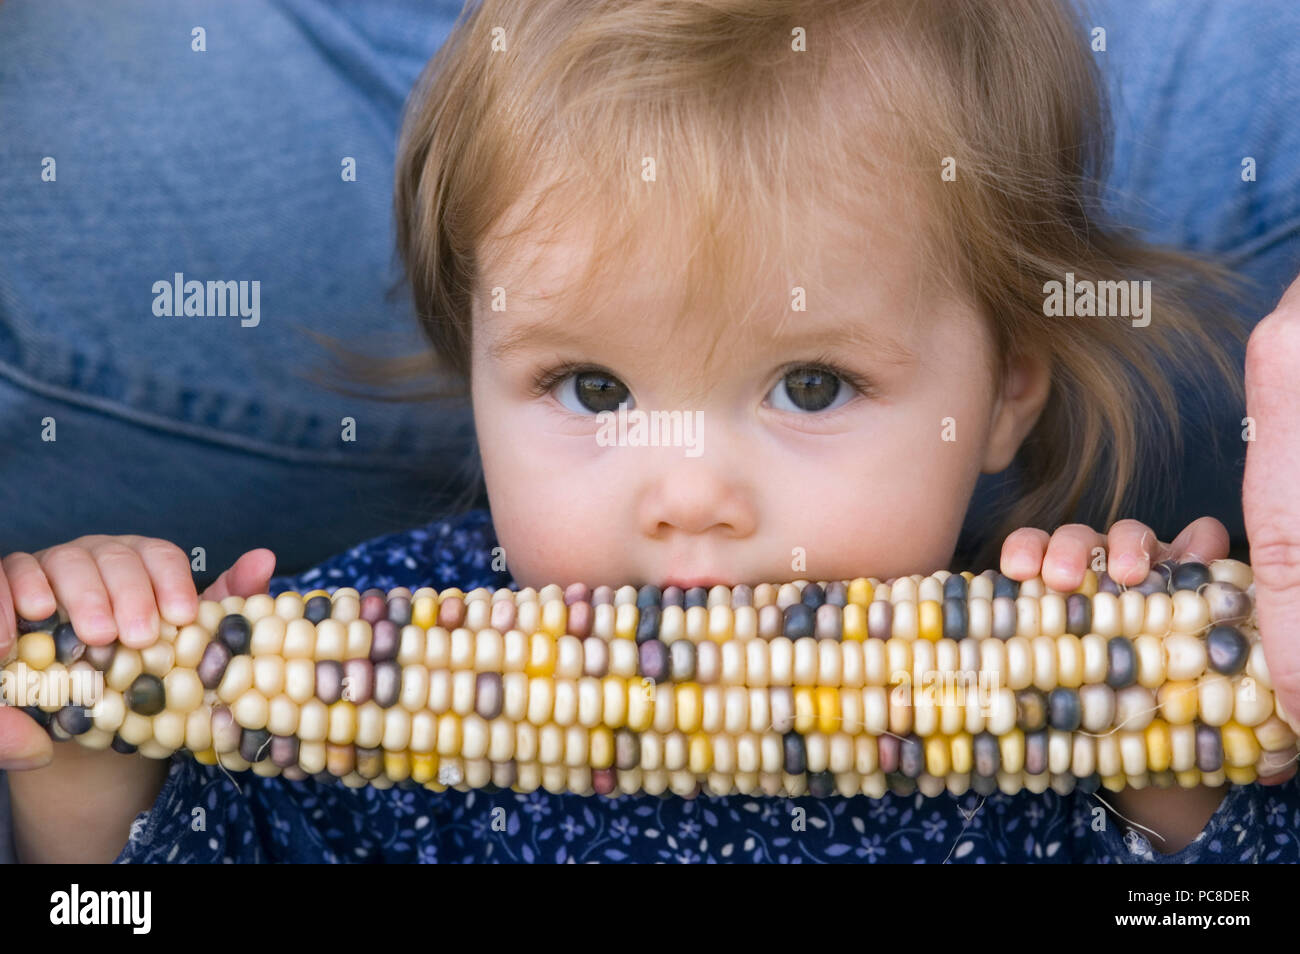 An eight month old girl chews on an ear of corn. - Stock Image